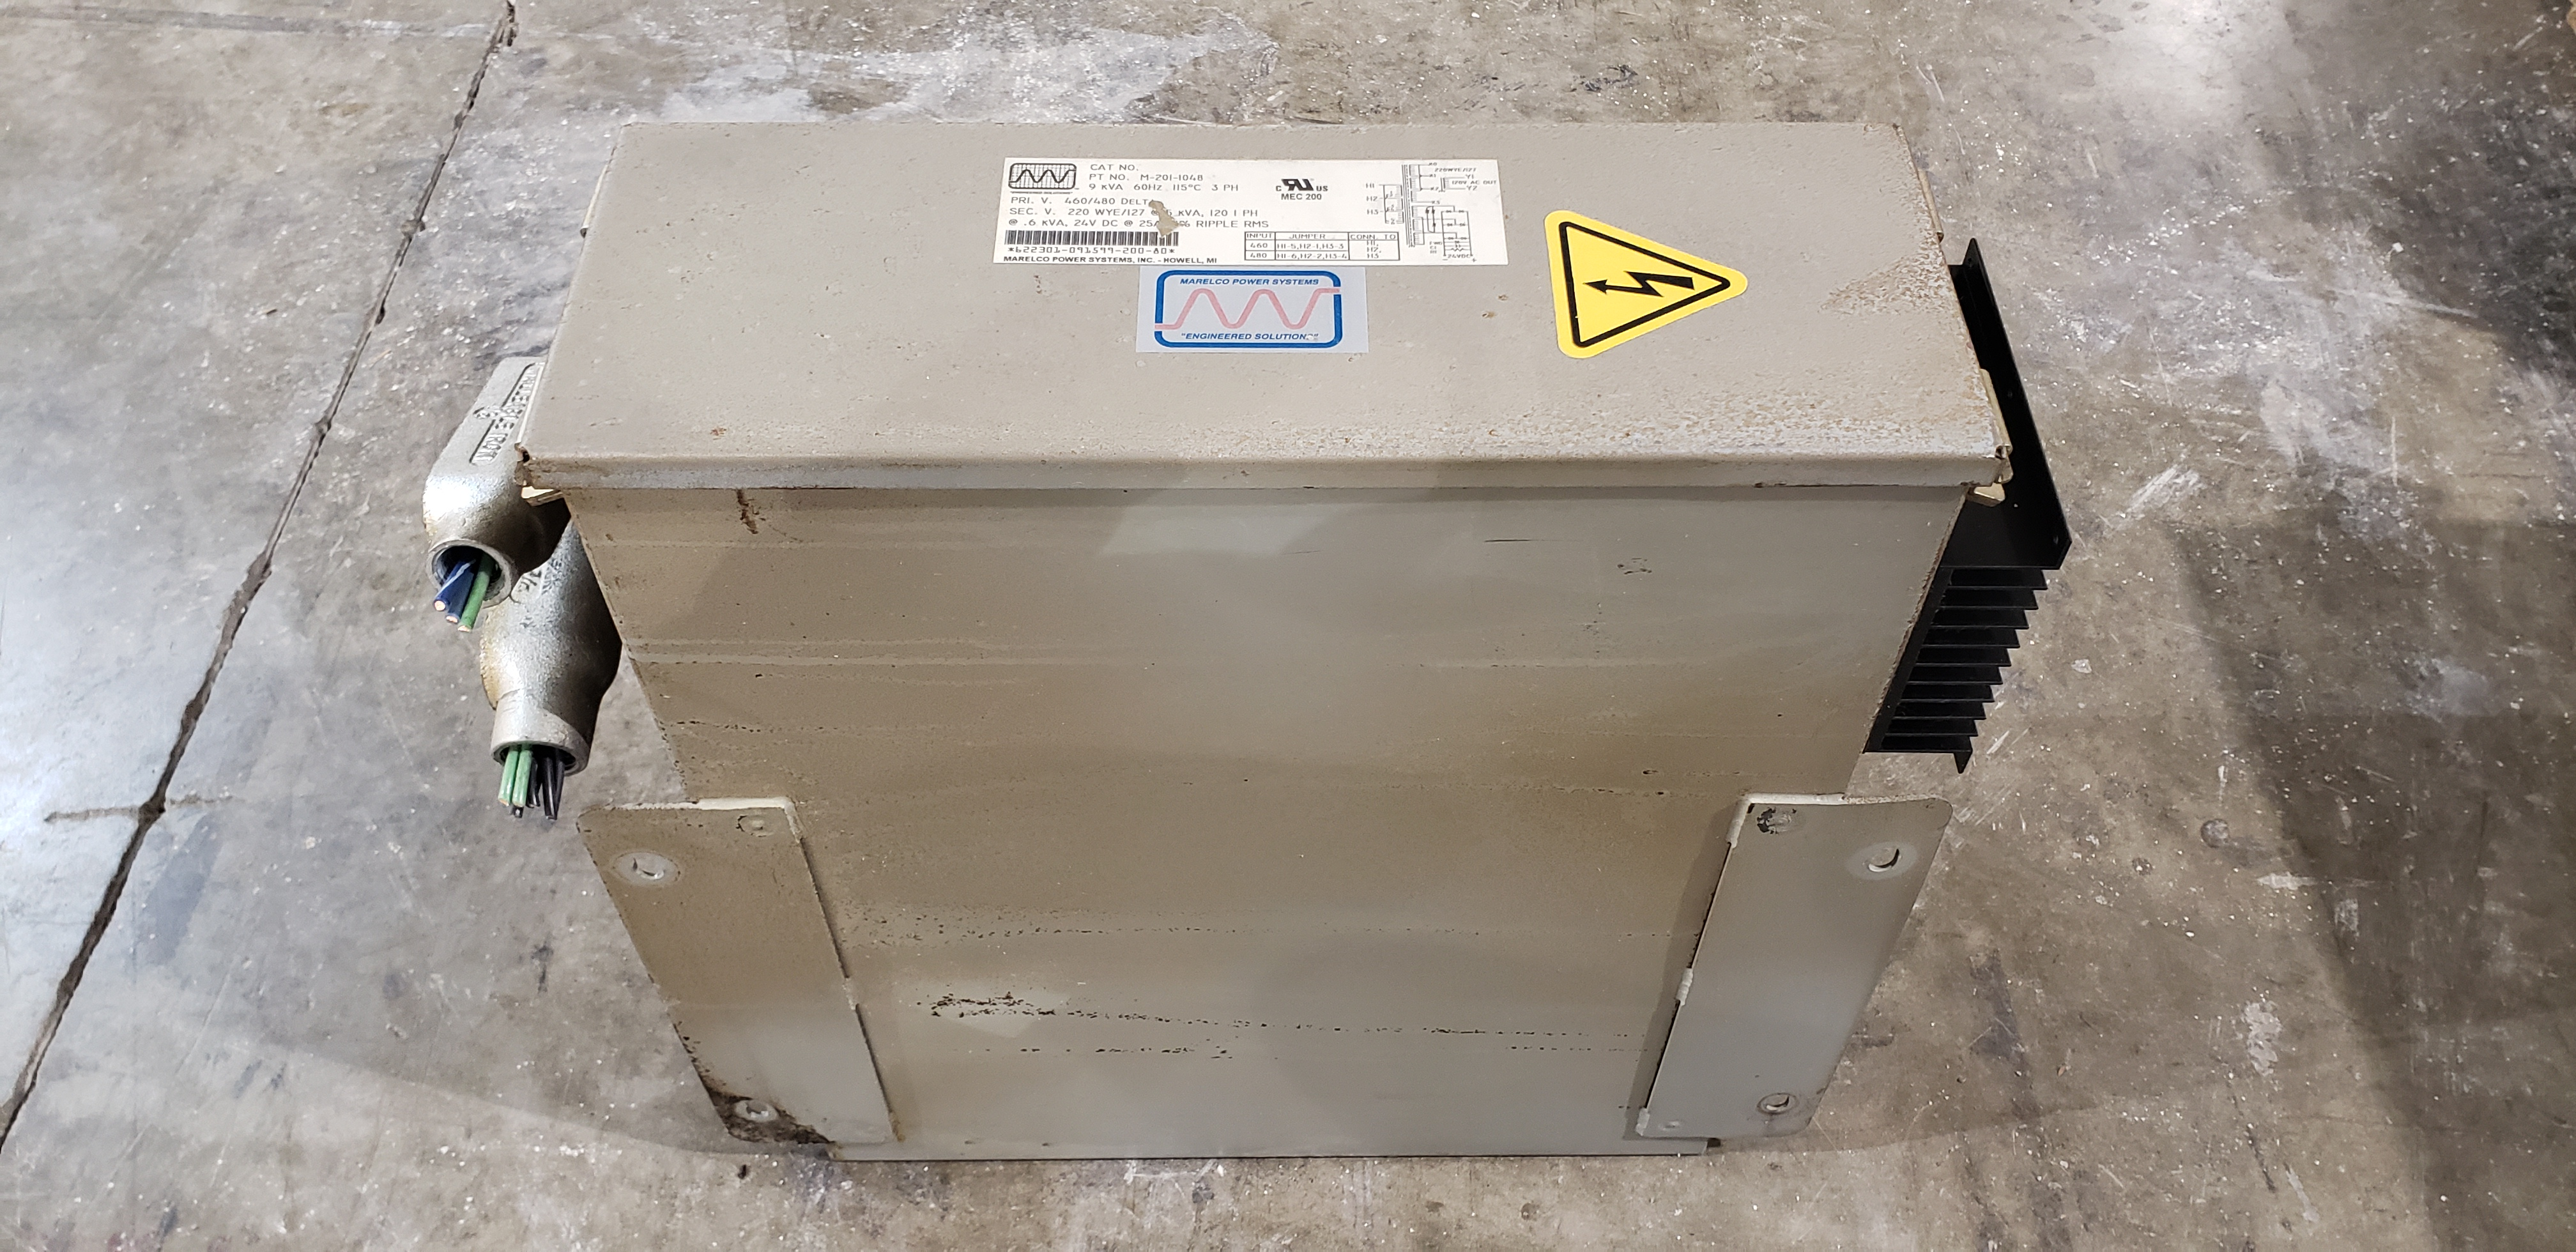 Marelco Power Systems Transformer M-201-1048